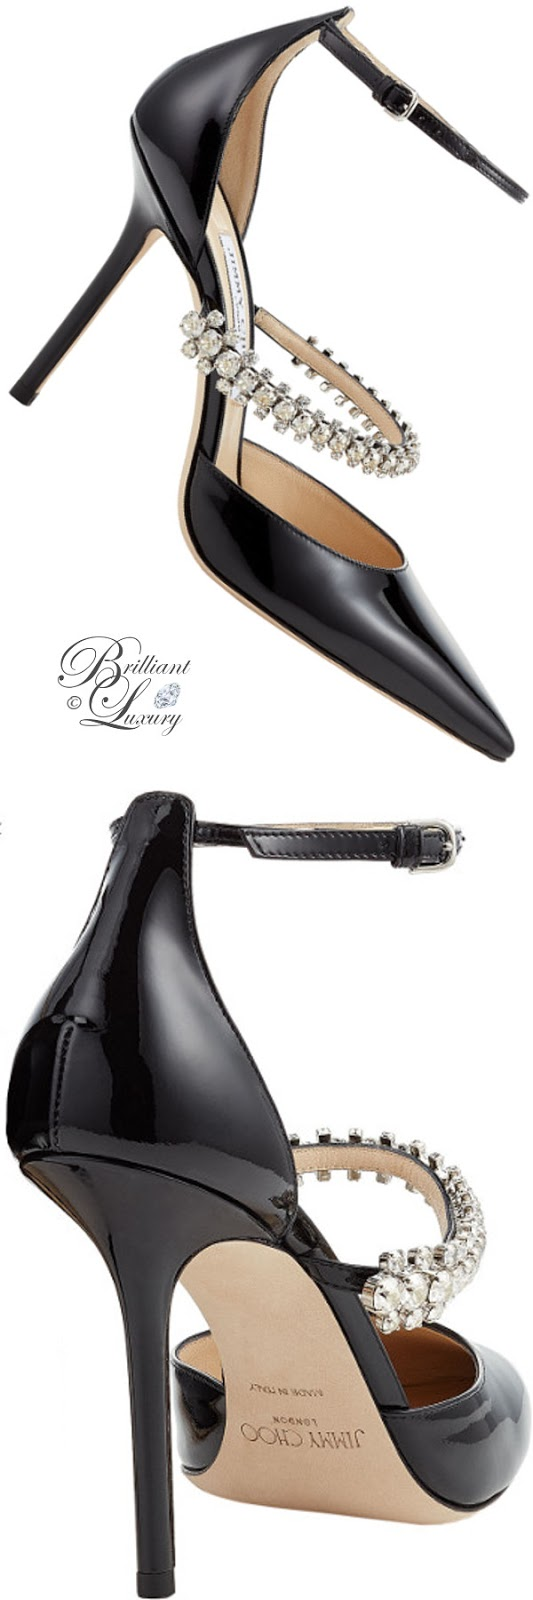 optimized pins Brilliant Luxury ♦ Jimmy Choo Bobbie Black Patent Leather Pointy Toe Pumps with Crystal Strap #brilliantluxury